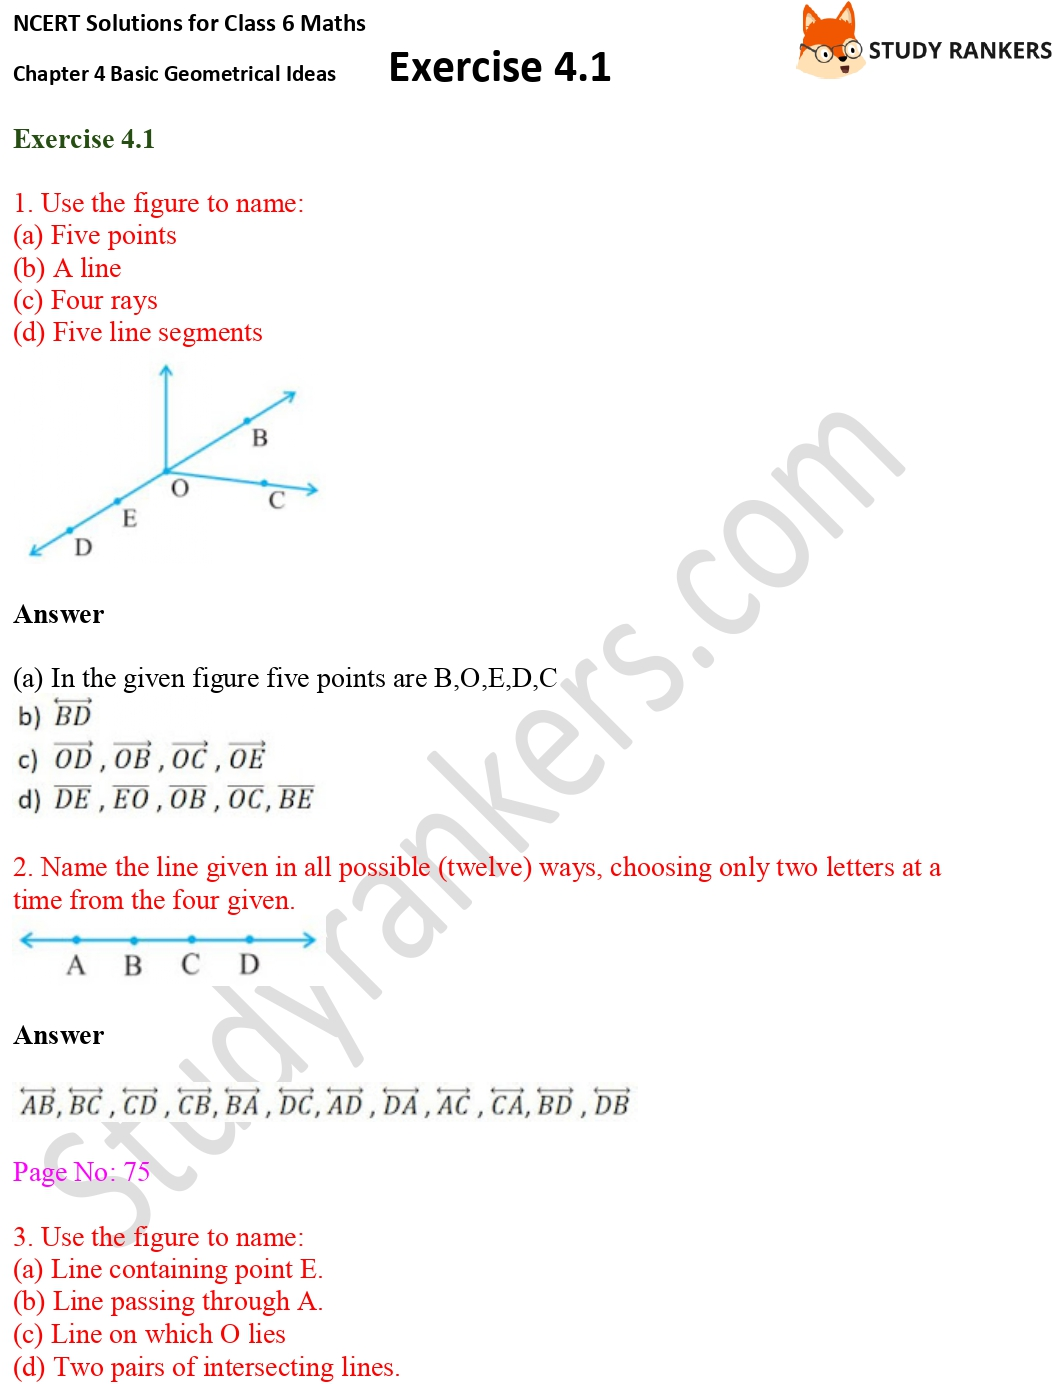 NCERT Solutions for Class 6 Maths Chapter 4 Basic Geometrical Ideas Exercise 4.1 Part 1